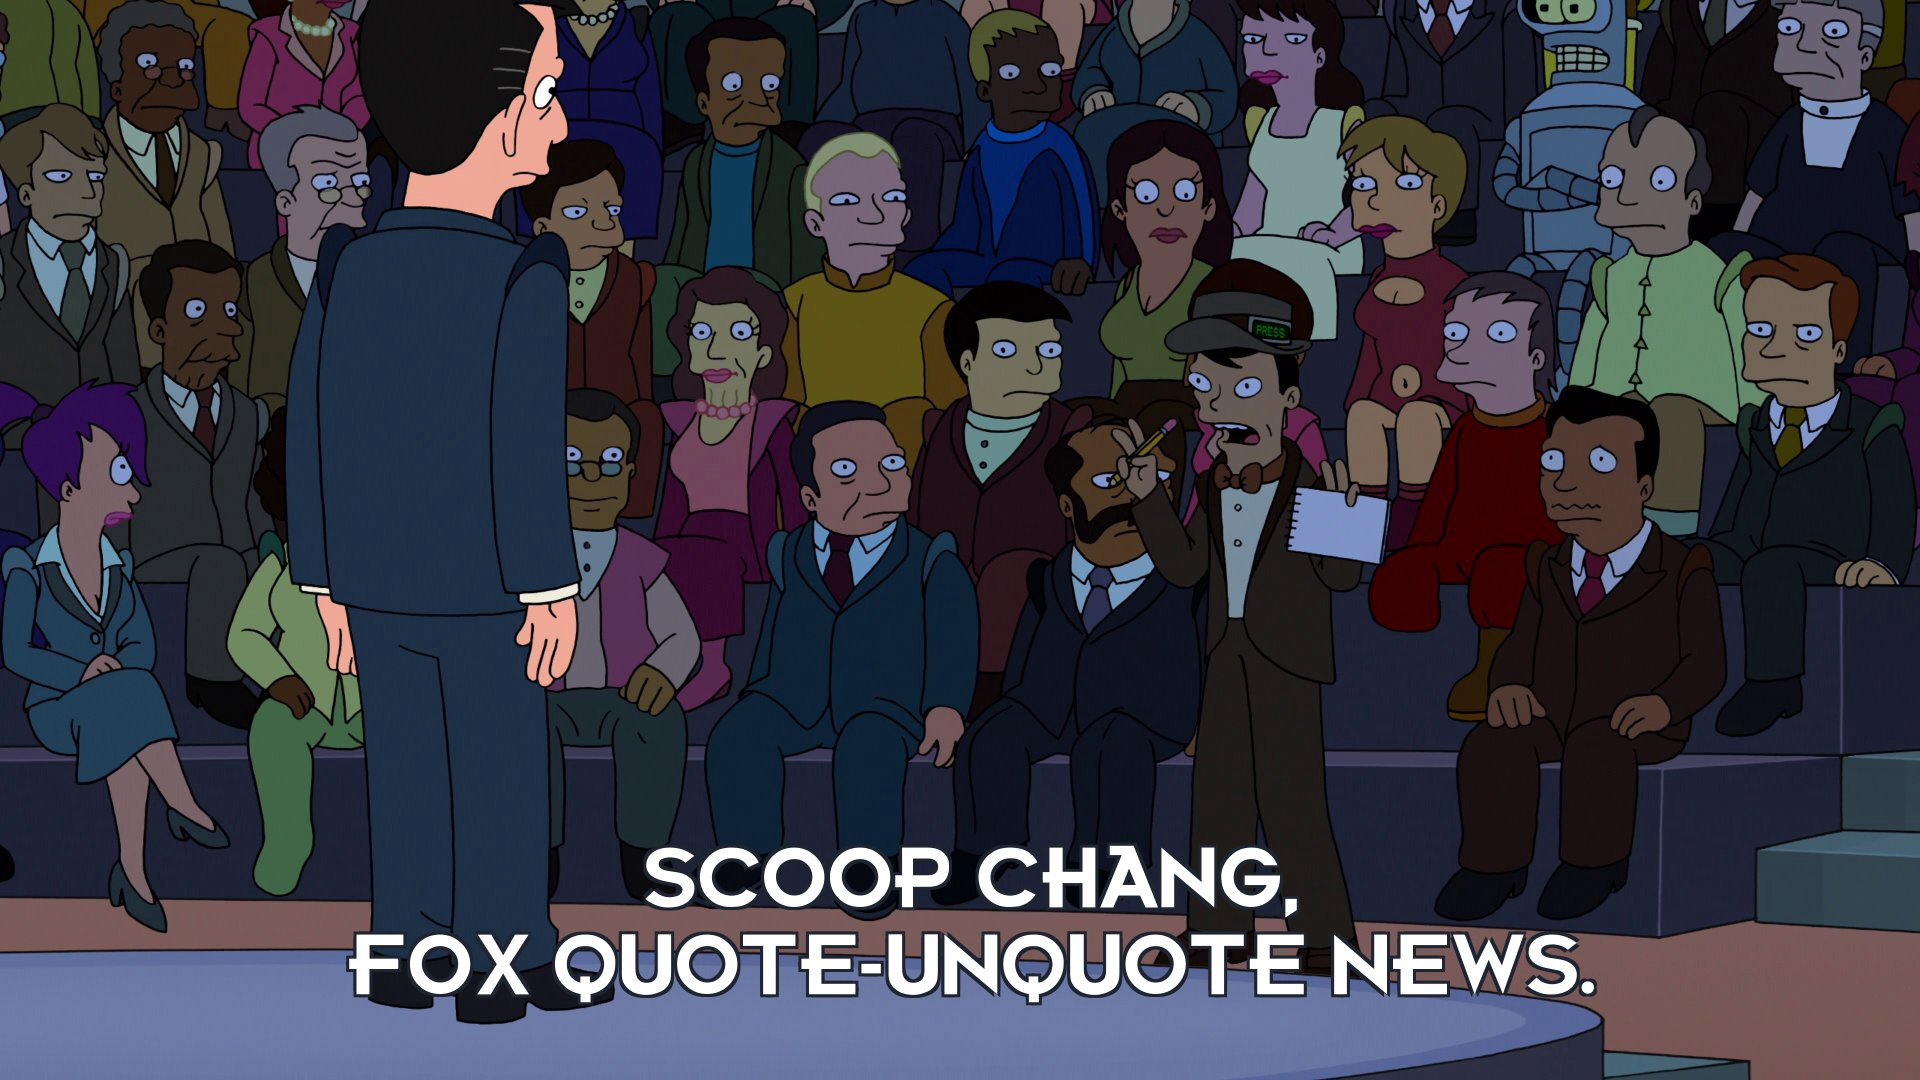 Scoop Chang: Scoop Chang, Fox quote-unquote News.